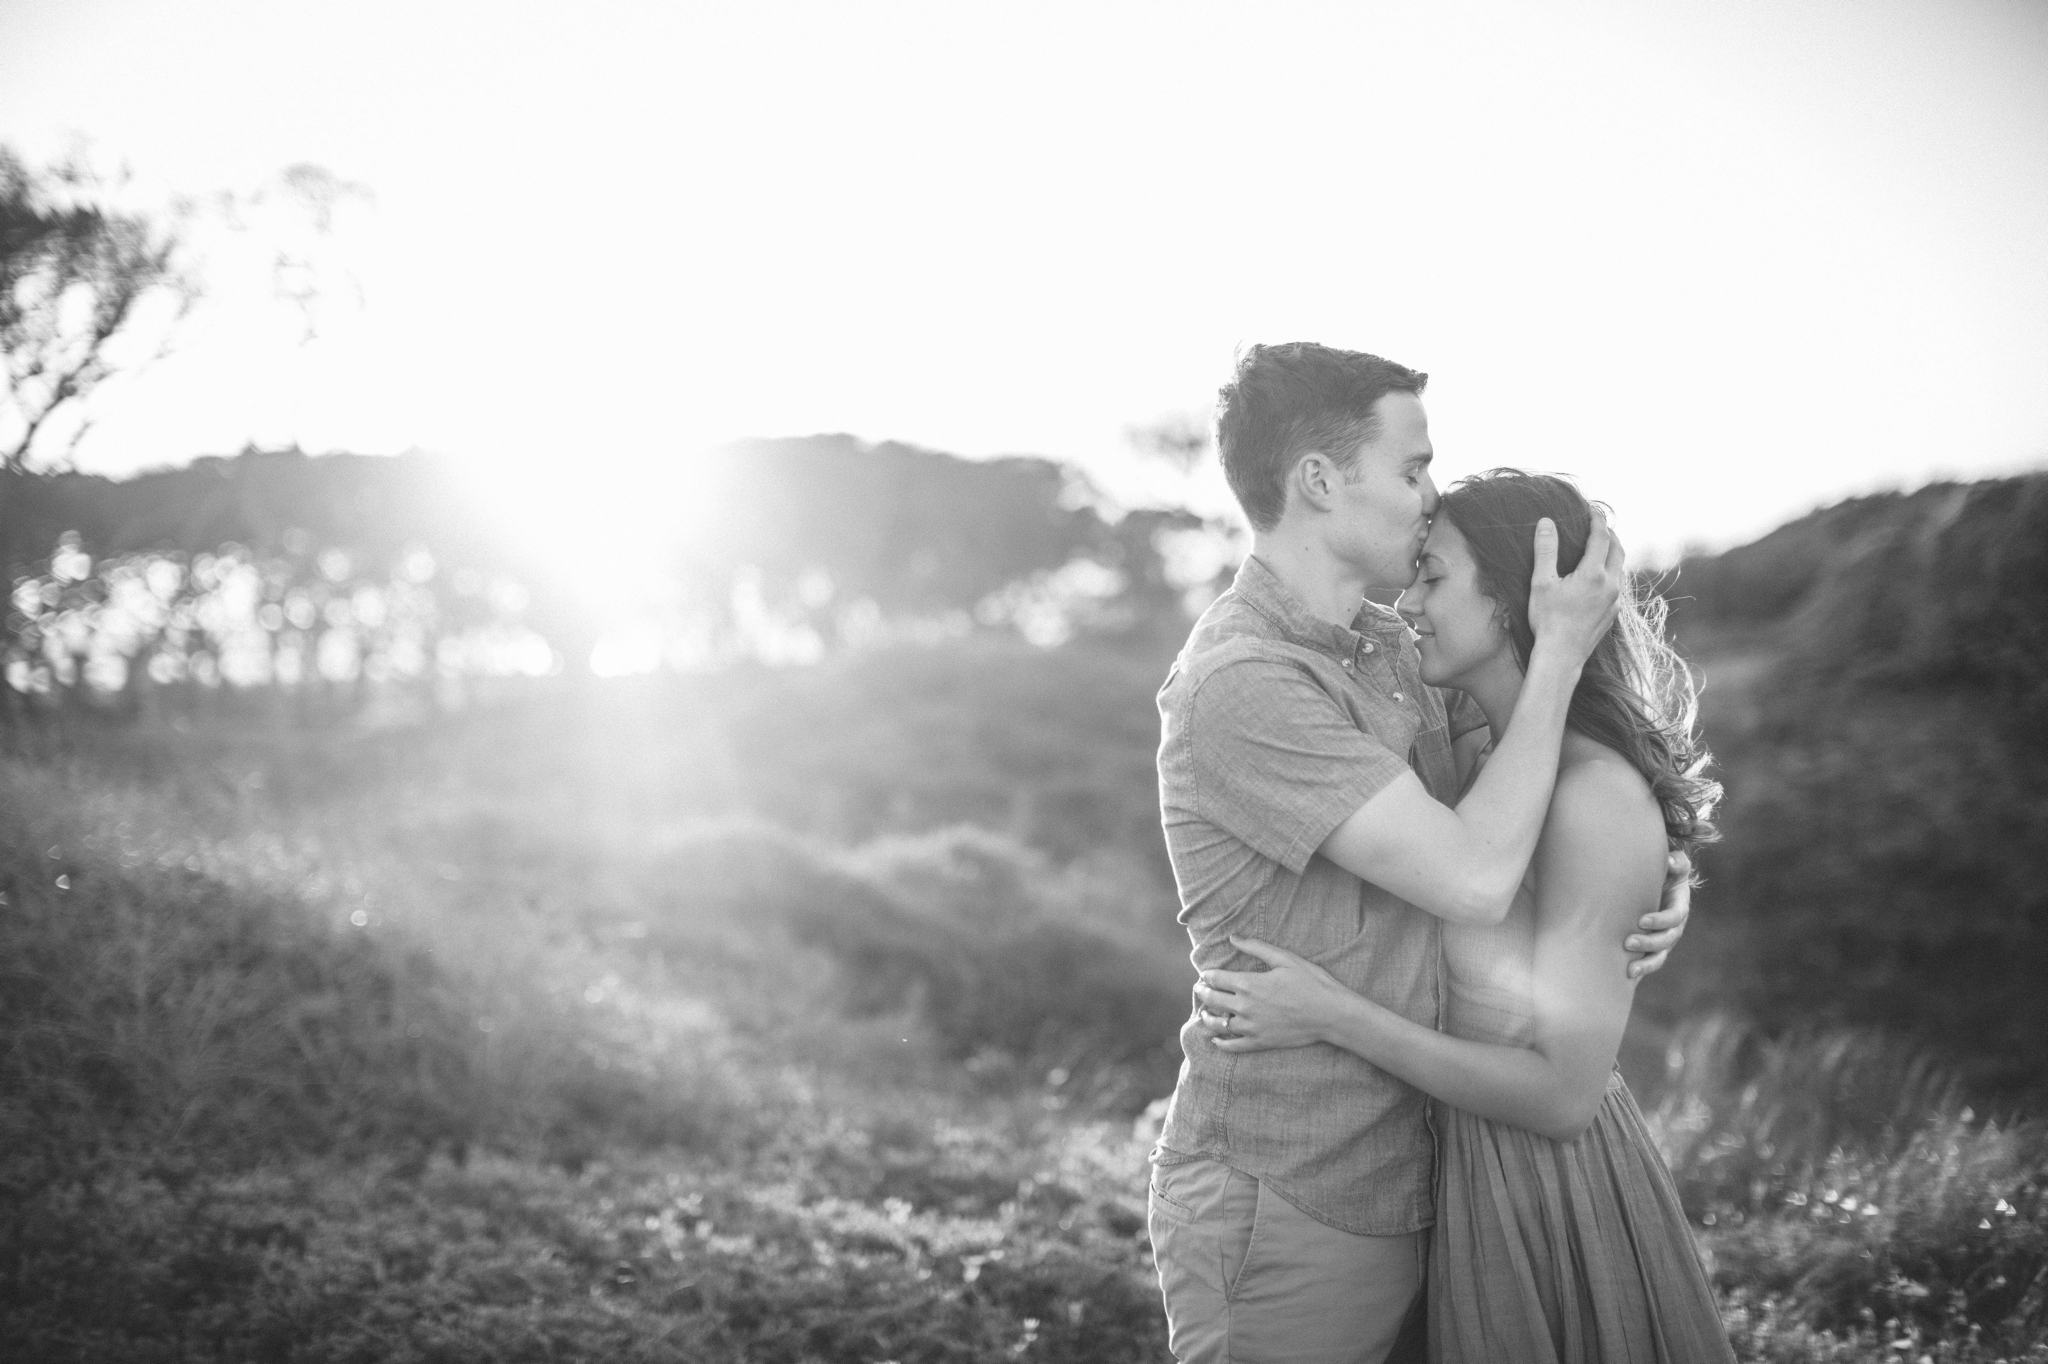 couple looking at each other while his hand is in her hair wile he is kissing her on the forehead- in front of lush green dunes and hills with the sunset behind them - Woman is in a flowy pastel maxi dress - outdoor golden light session - engagement photographer in honolulu, oahu, hawaii - johanna dye photography